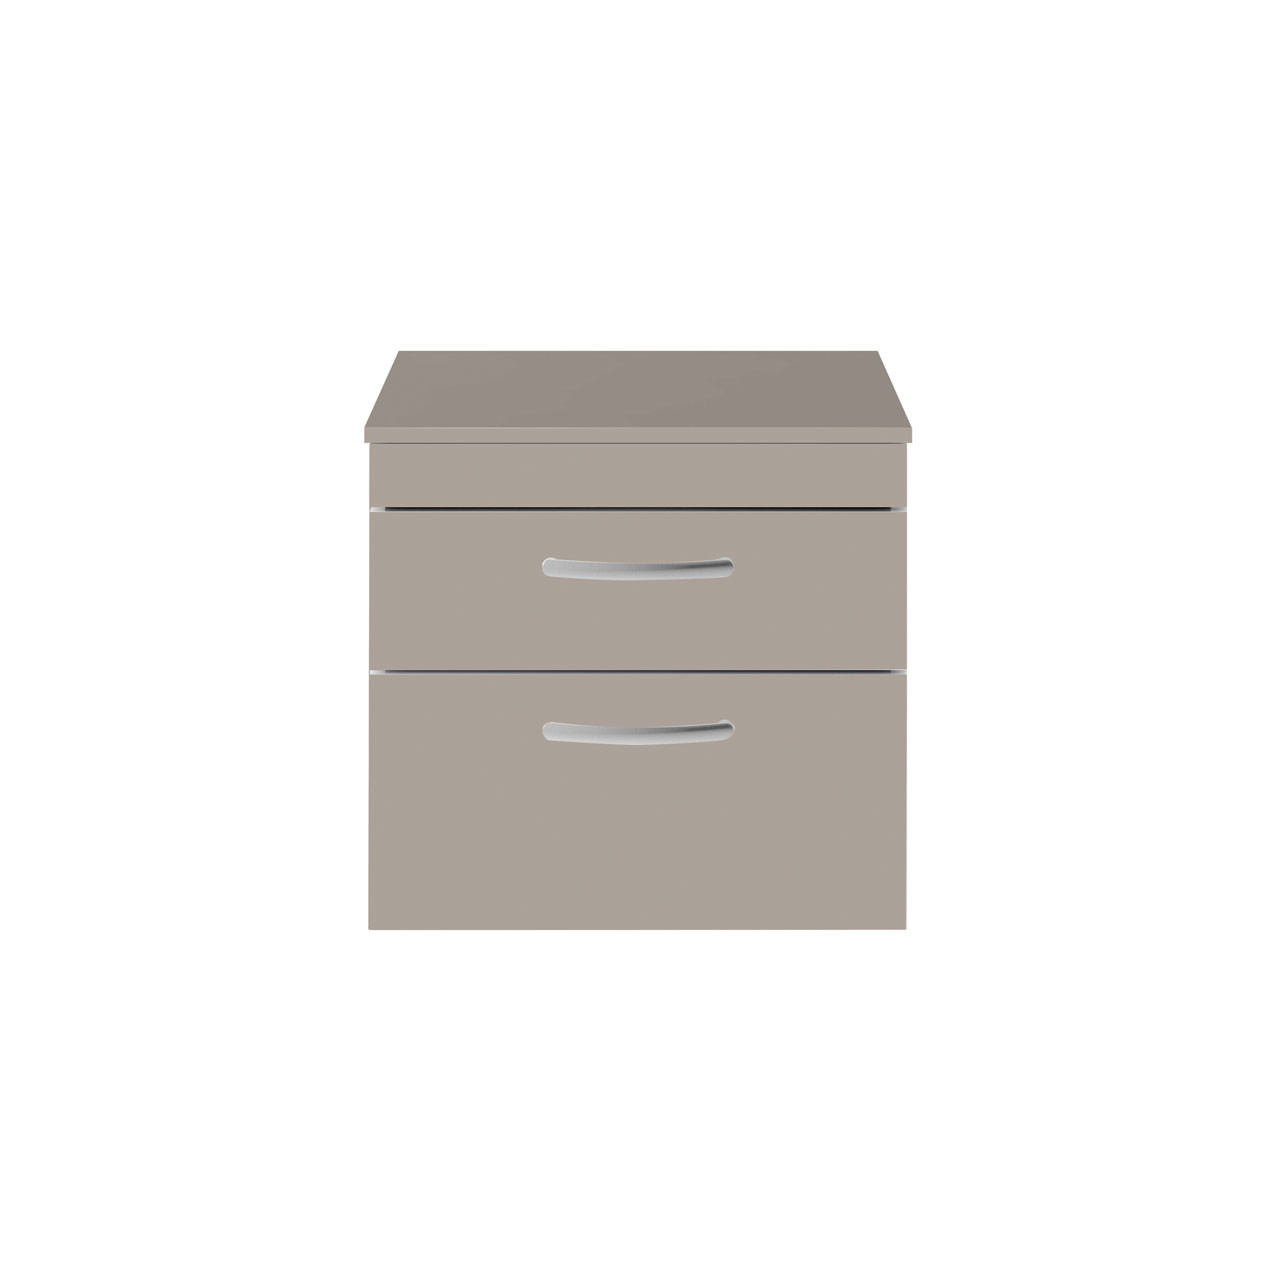 Premier Athena Stone Grey 600mm Wall Hung 2 Drawer Vanity Unit with Worktop - ATH049W